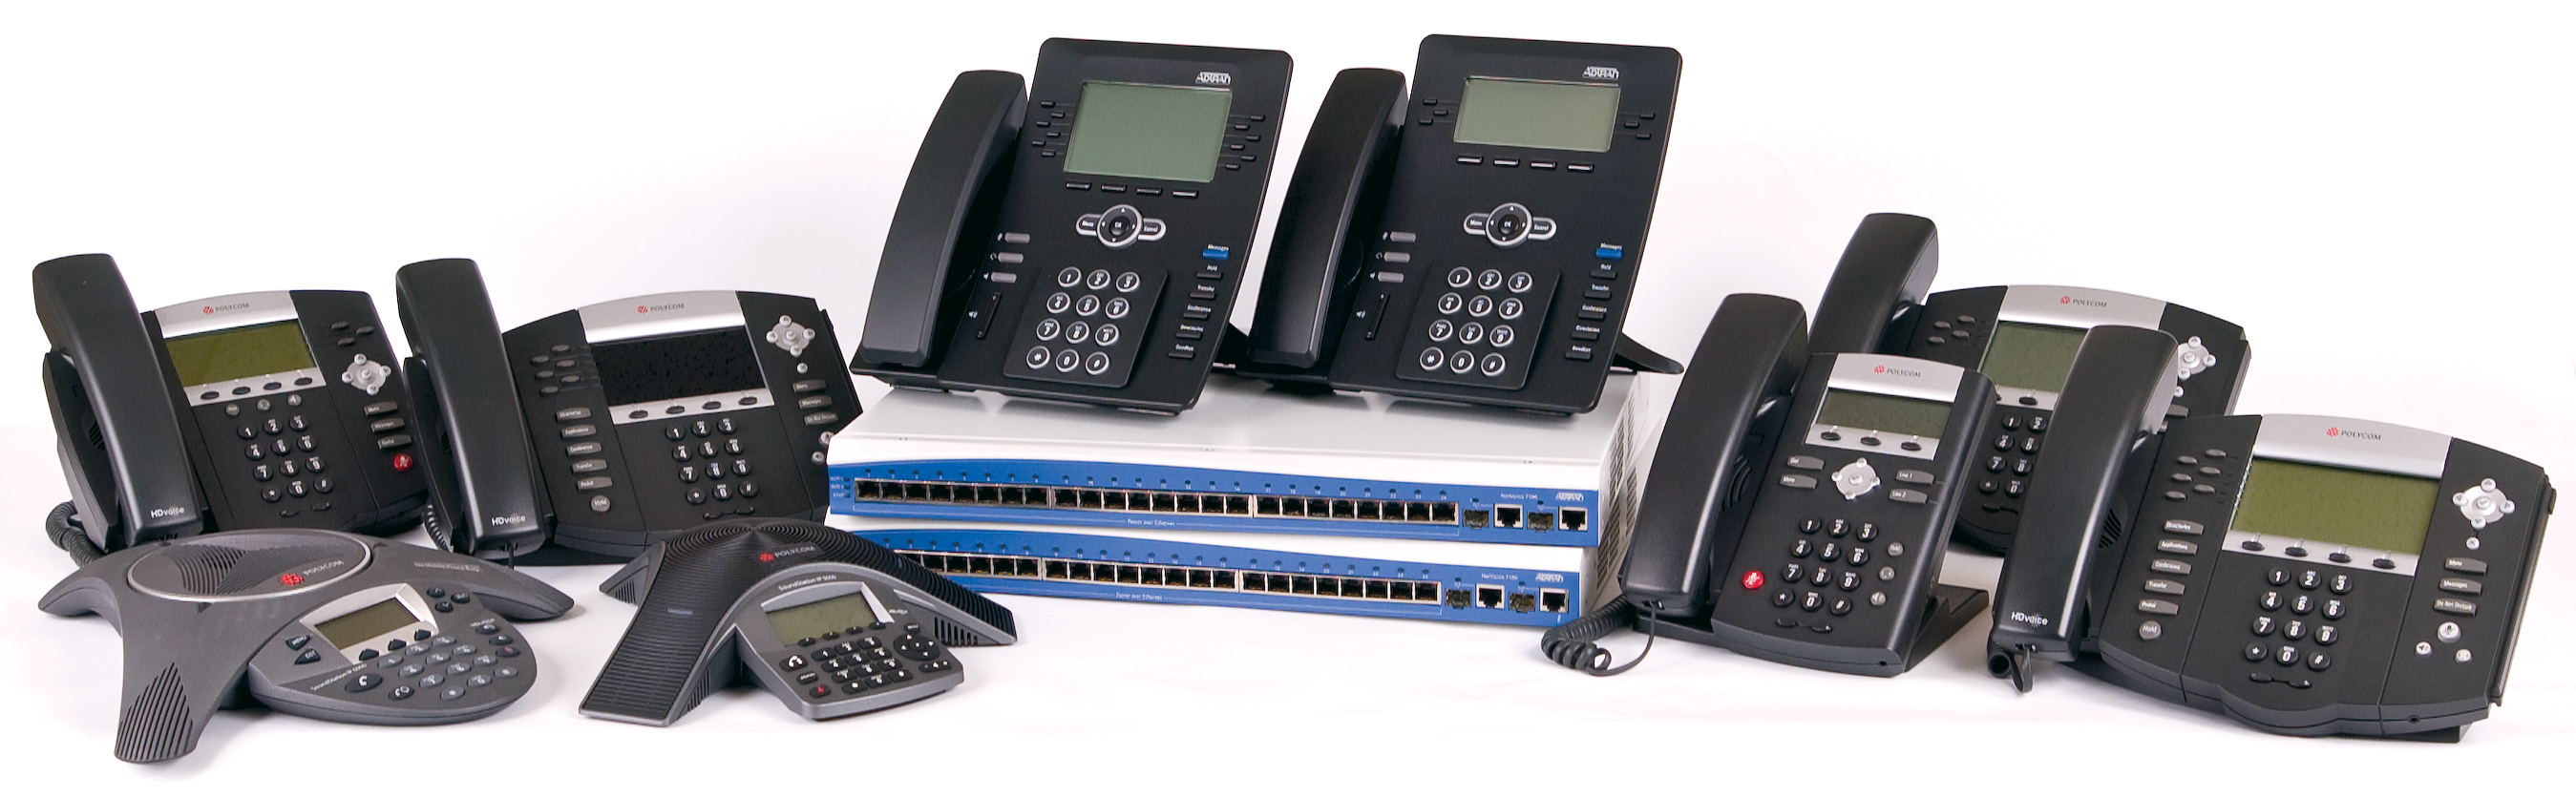 7000_Series_IP_Telephony_2010_polycom1-1